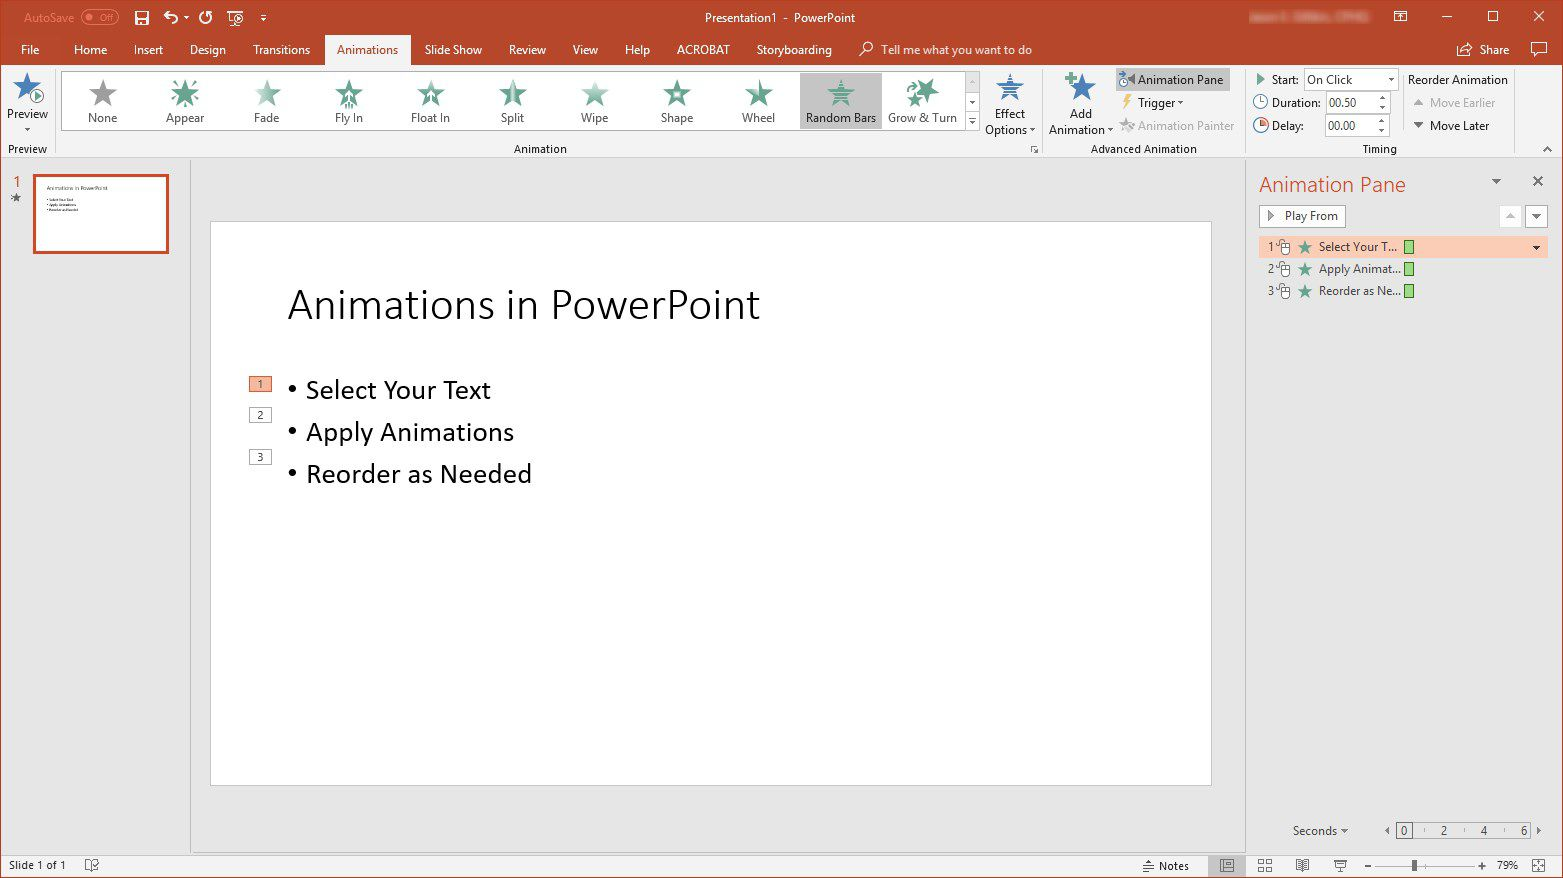 change order of animations for powerpoint slides